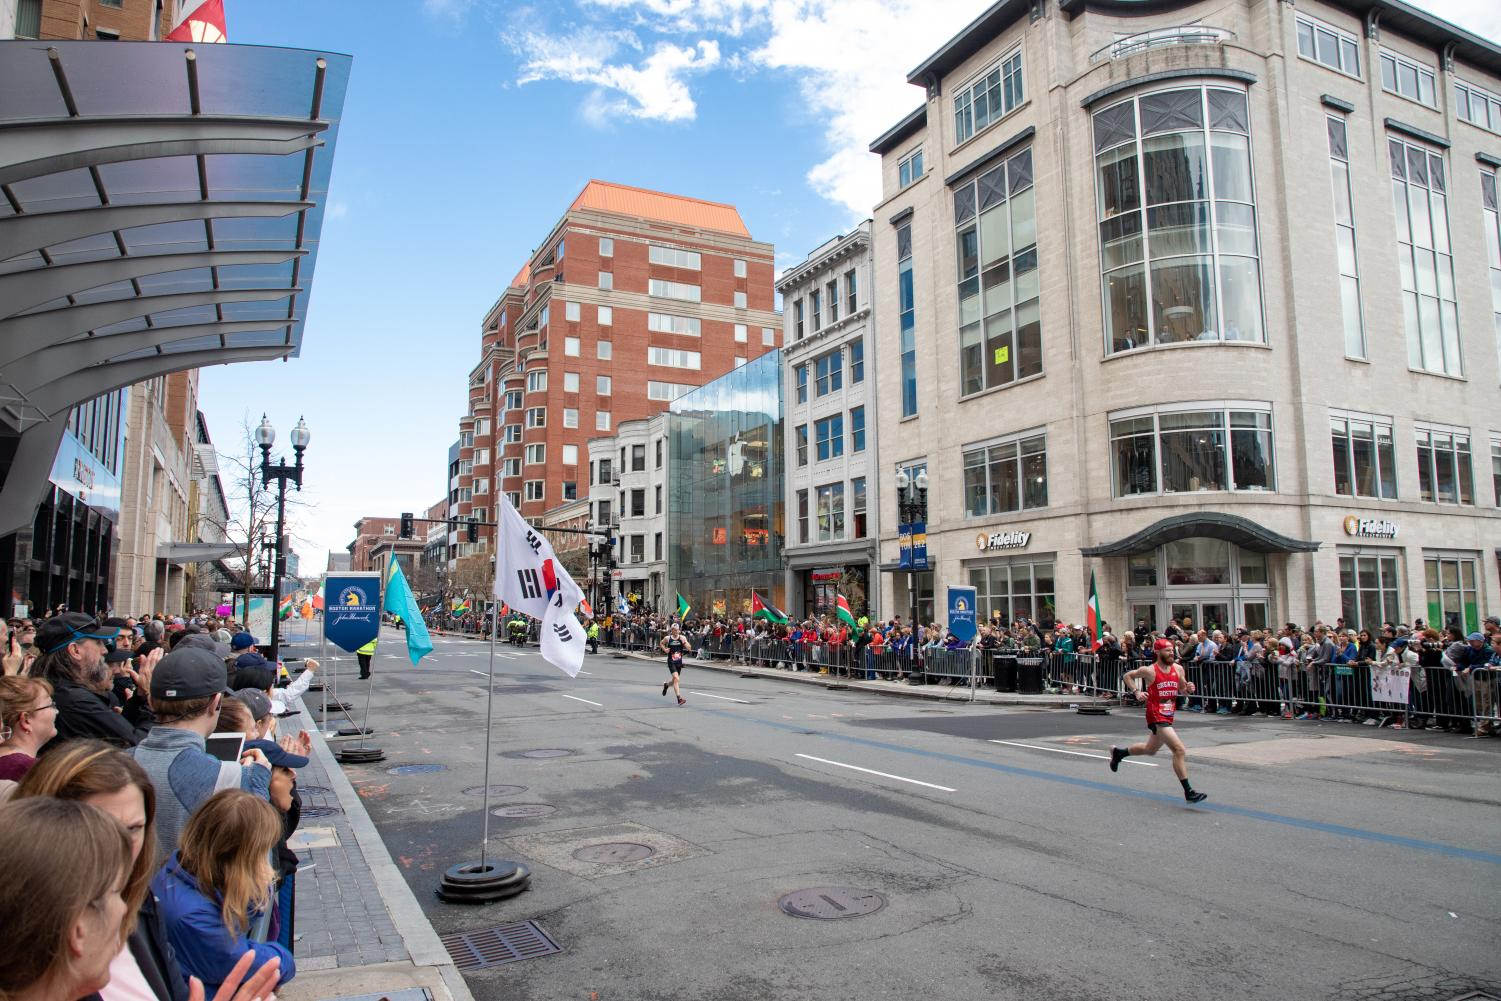 Thousands showed up to cheer on Boston Marathon runners on Monday.